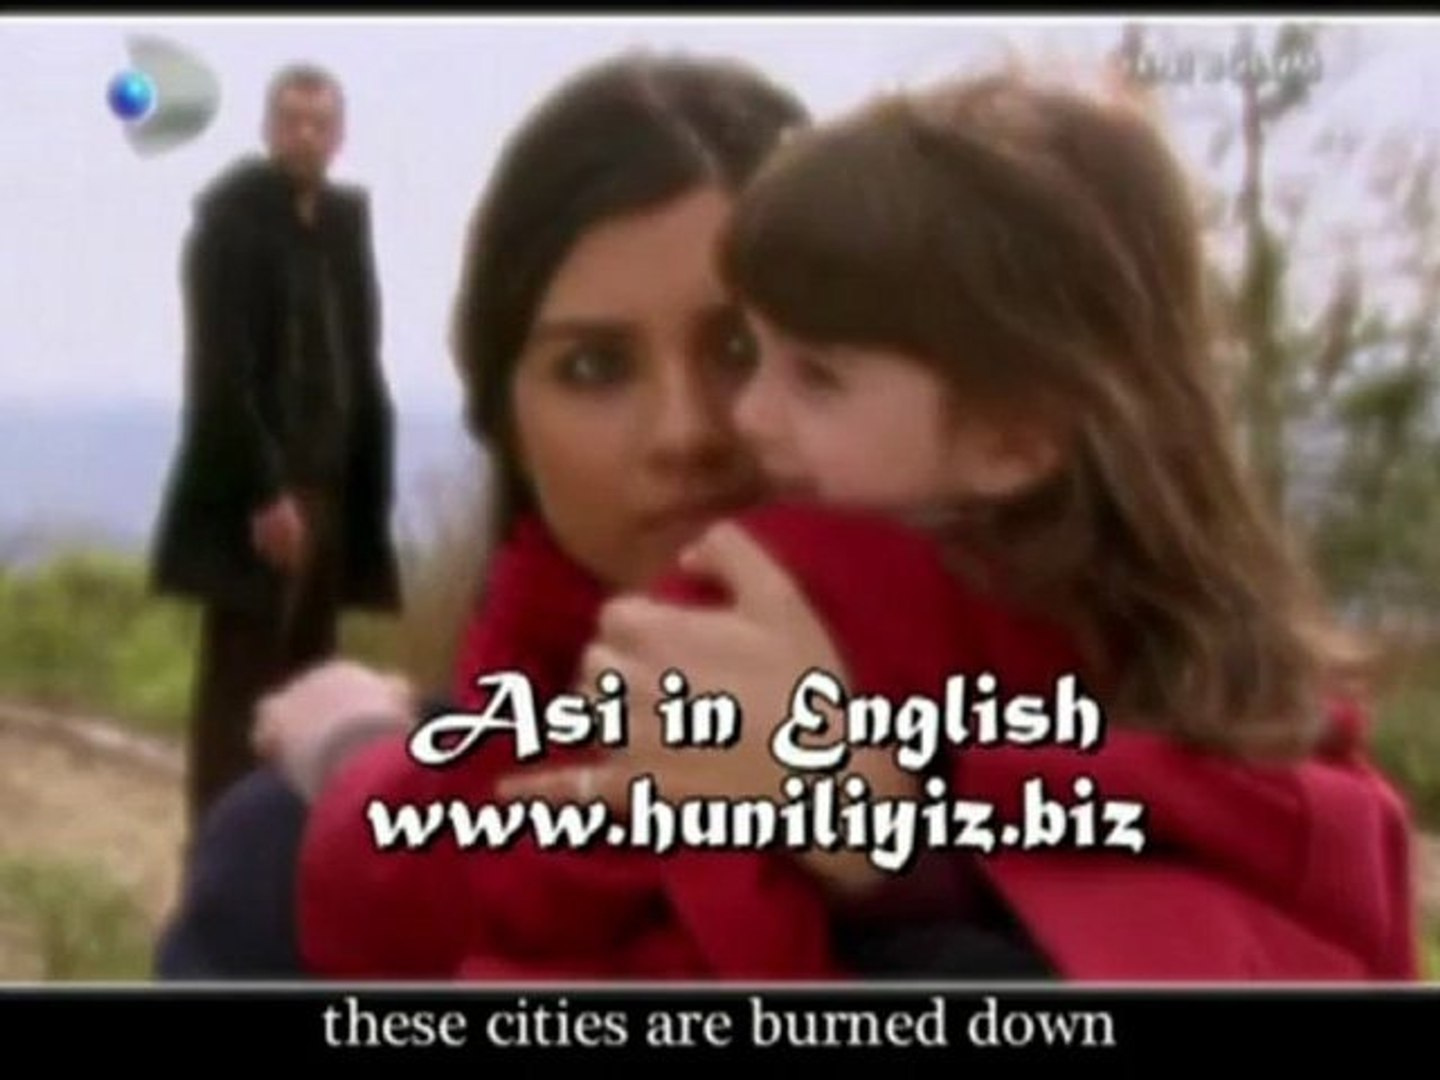 Asi 57 bolum Part 2 + Asi Generic with lyrics - English Subtitles